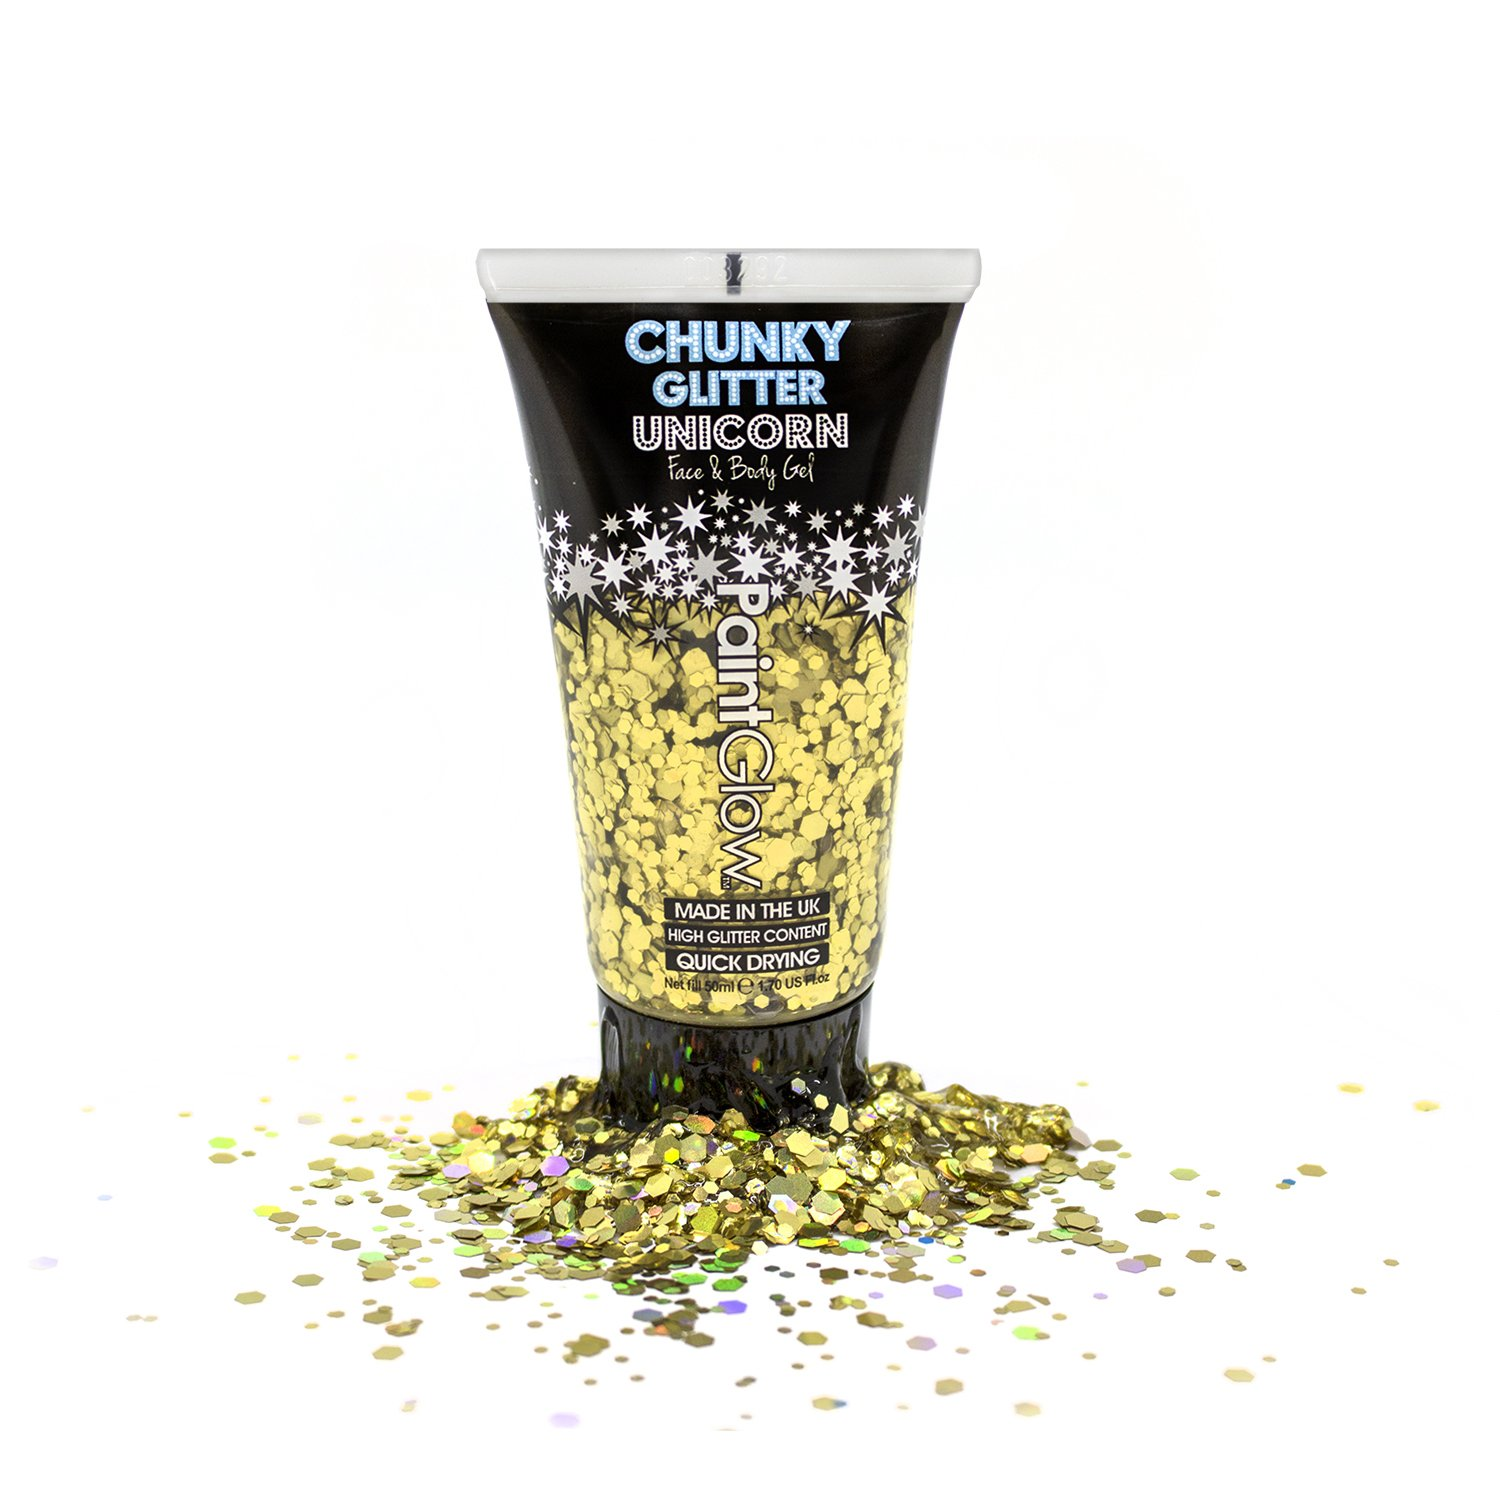 Chunky cosmetic glitter gels 50ml for face, body & hair from PaintGlow (Vegan) Festival glitter Body glitter DGG2R07